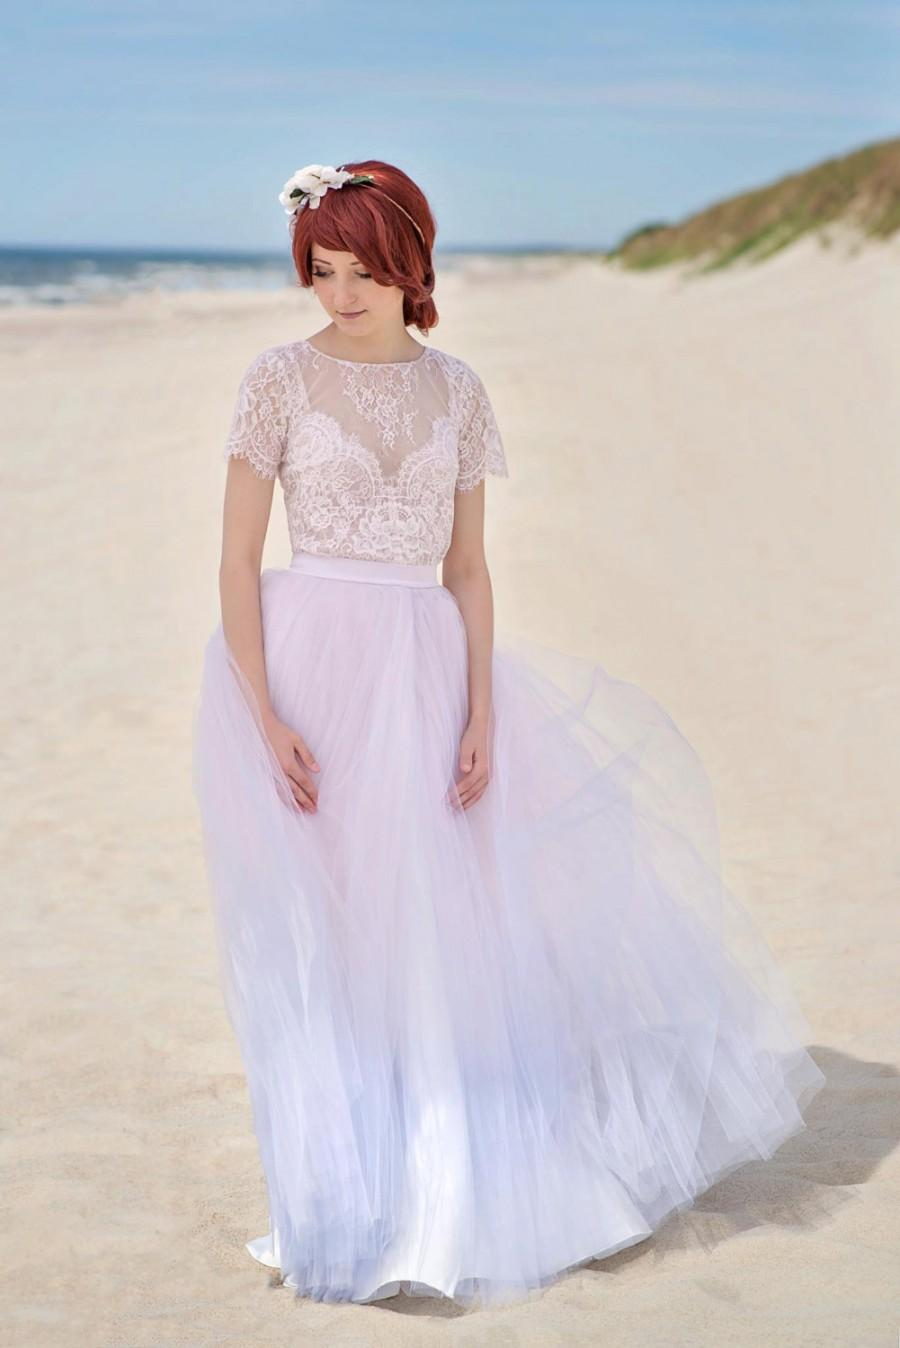 Wedding - Serenity - ombre wedding dress / girly cute wedding dress / lace and tulle wedding dress / dress with a slit / rose quartz and serenity